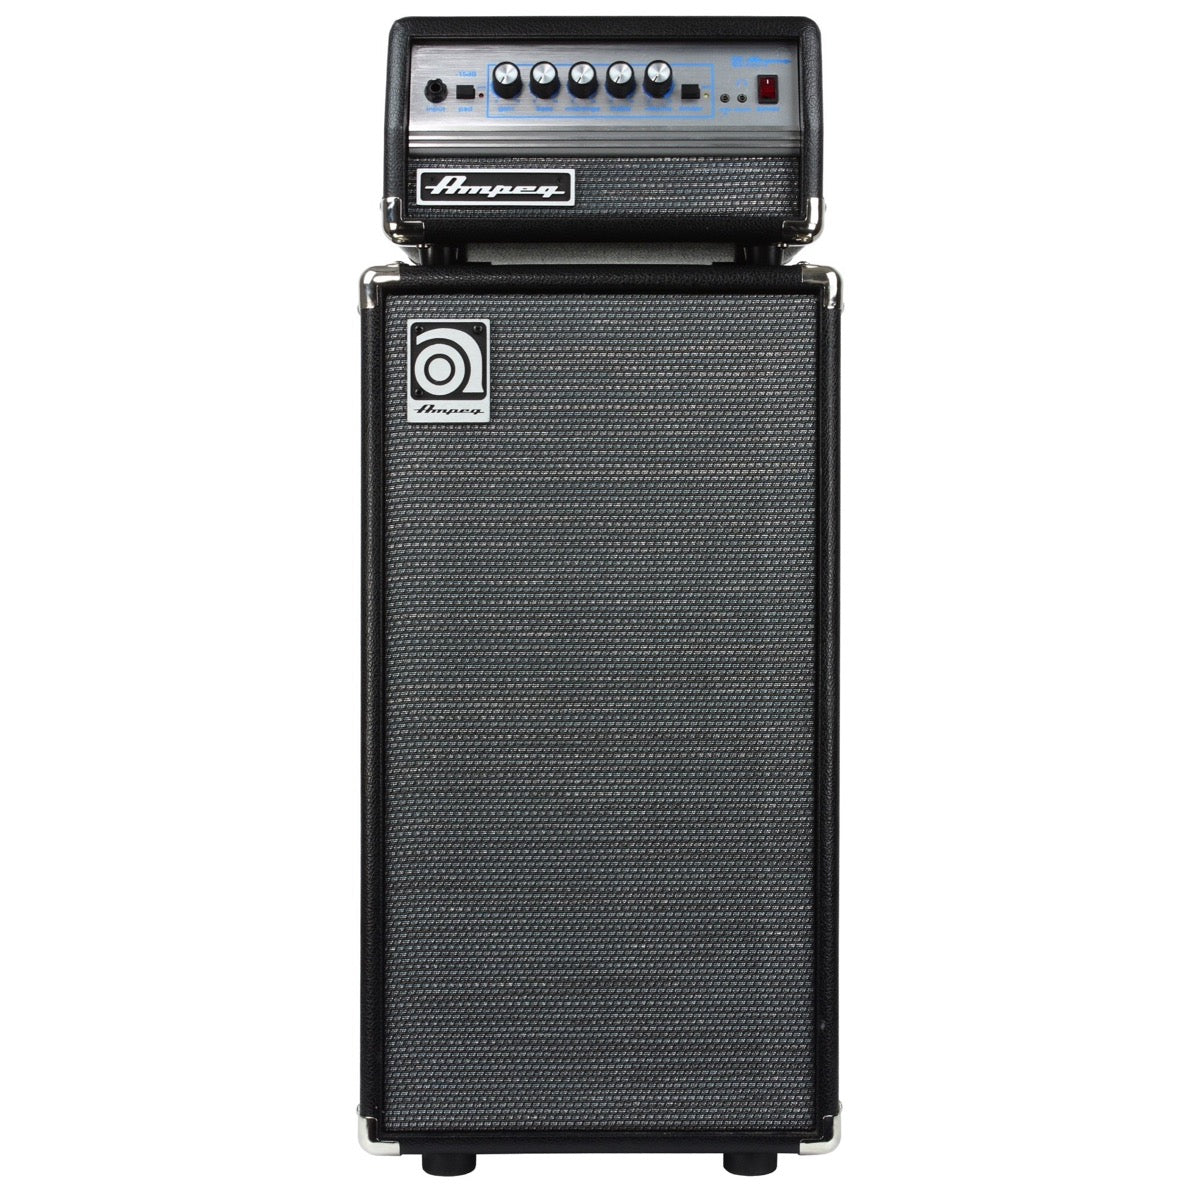 Ampeg Micro VR Bass Amplifier Half Stack with SVT Micro VR Head and SVT210AV Micro Classic Cabinet